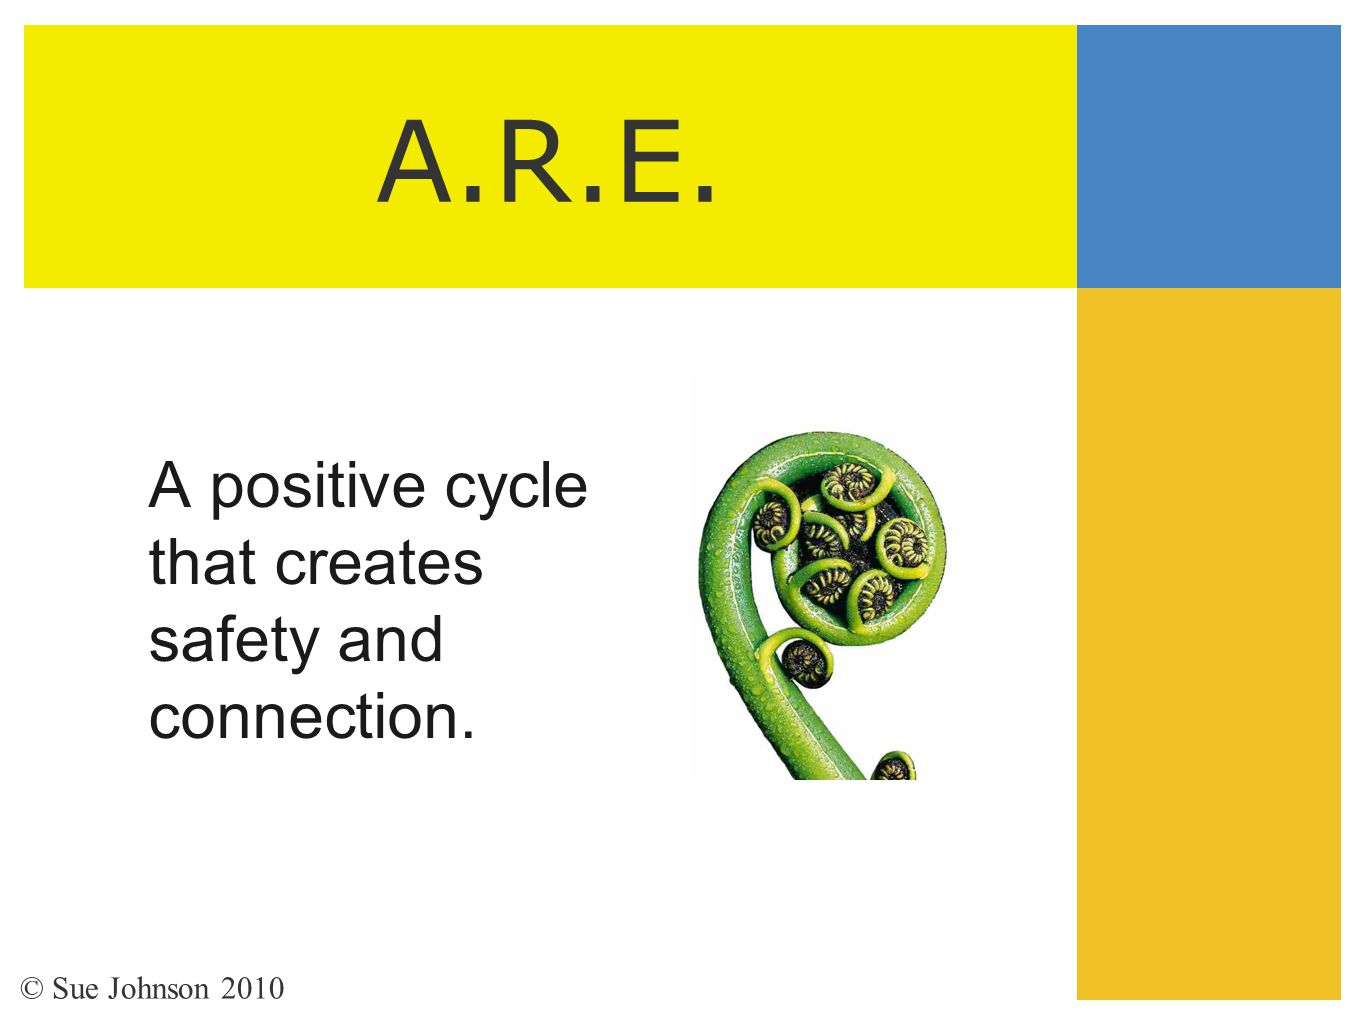 A.R.E. A positive cycle that creates safety and connection.